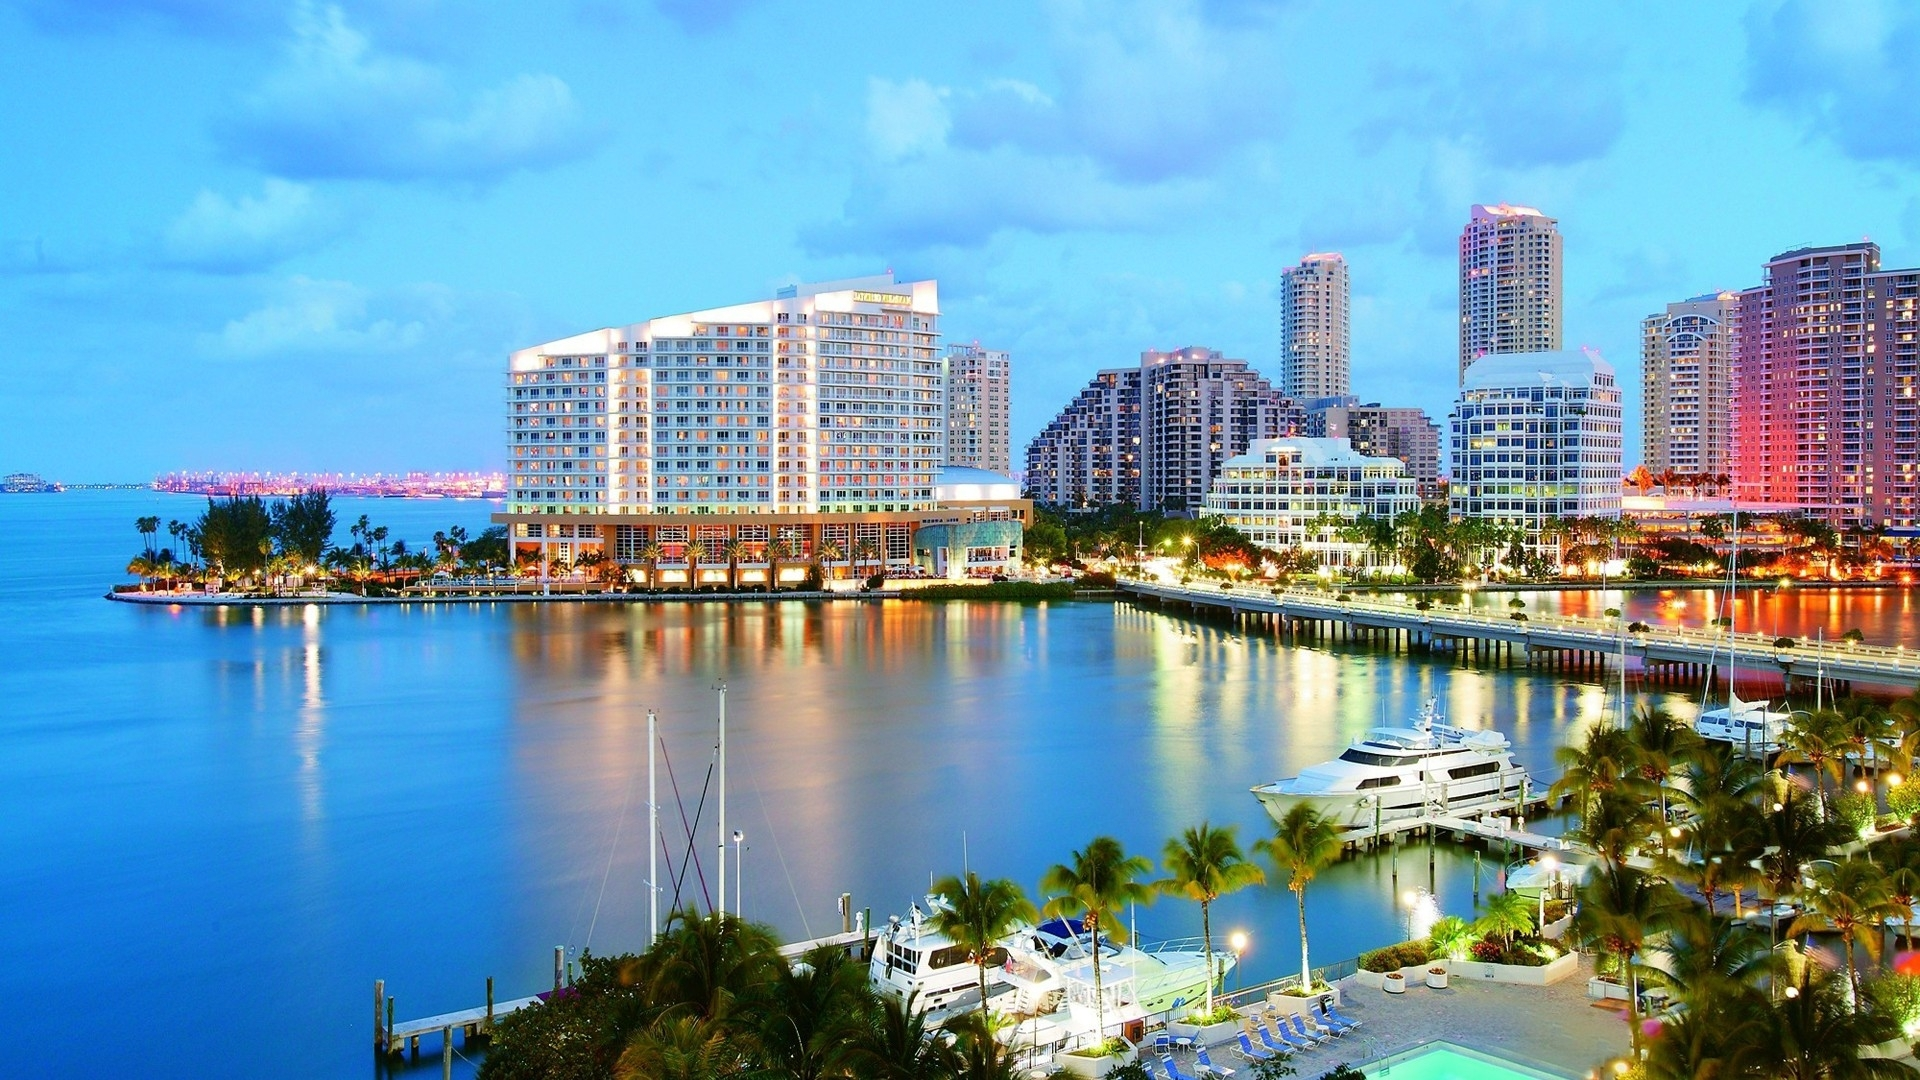 Florida Wallpapers Download HD Wallpaper For 1920x1080